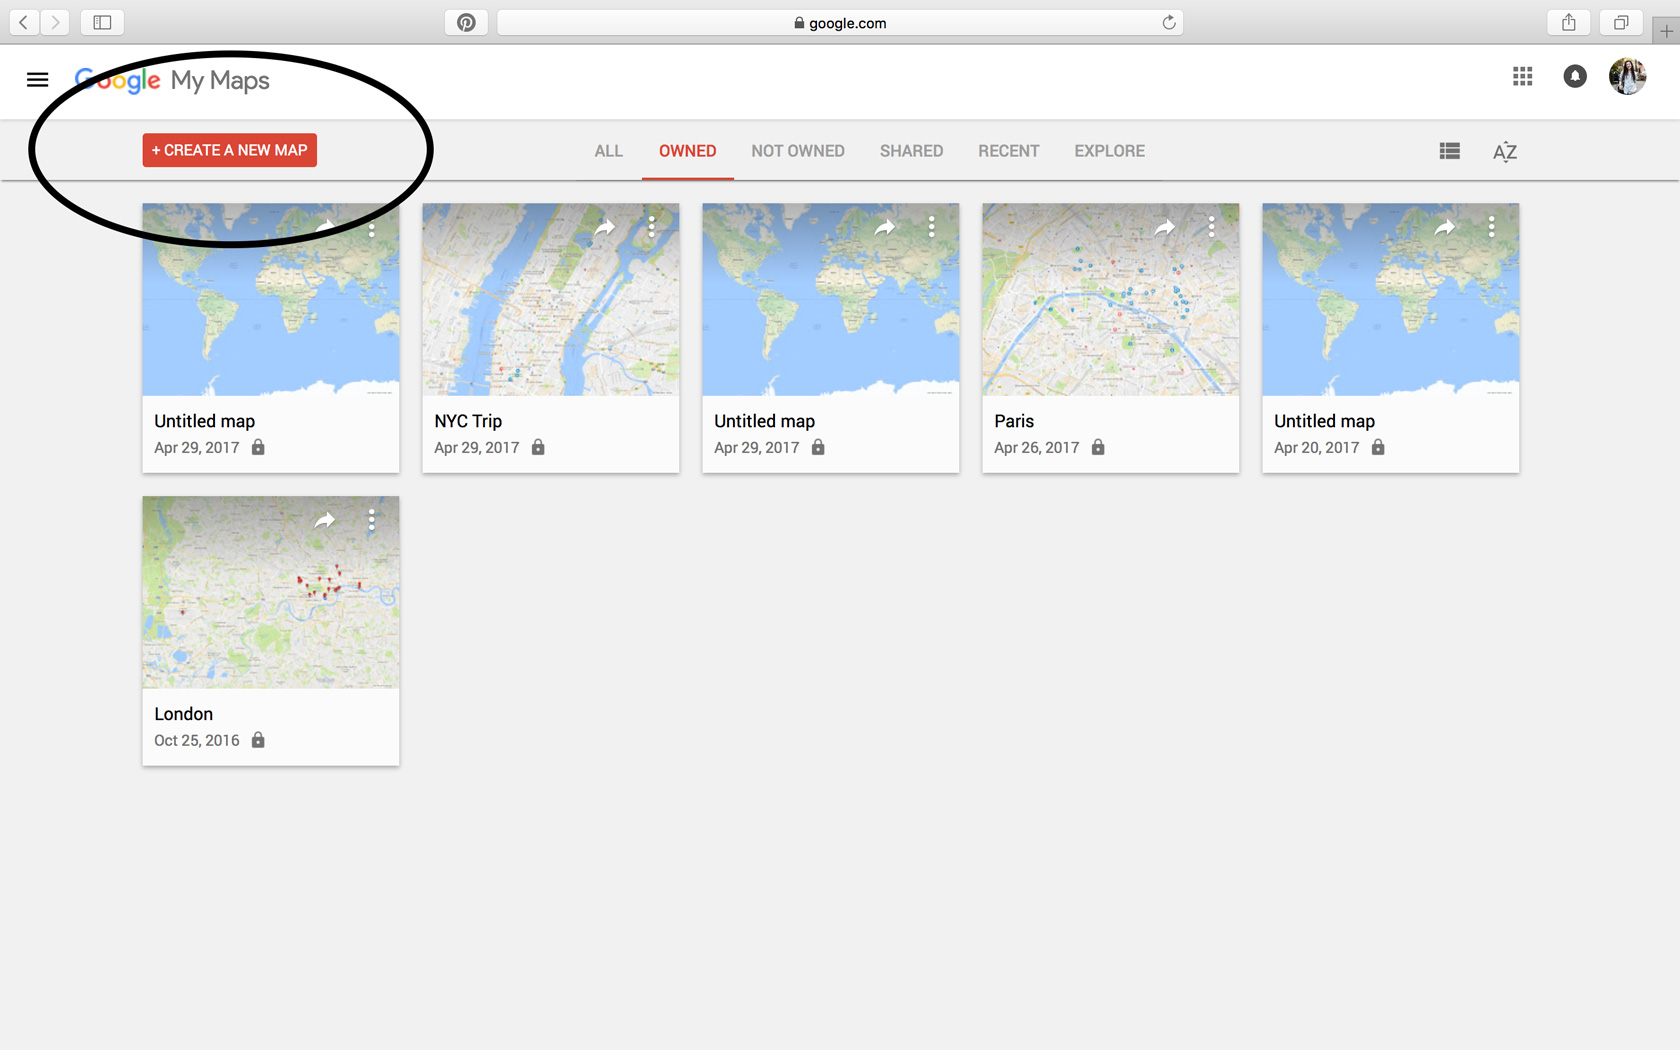 10 Step Tutorial to Make a Custom Google Map for Your Next ... Map My Trip Google on my google calendar, my google contacts, my google mail, my google plus, my google gmail, my msn maps, my google search, my google drive, satellite maps, my maps app, my google docs, my places google, bing maps, my google profile, my google history, my disney maps, my nokia maps, my google business, weather maps, my maps example,